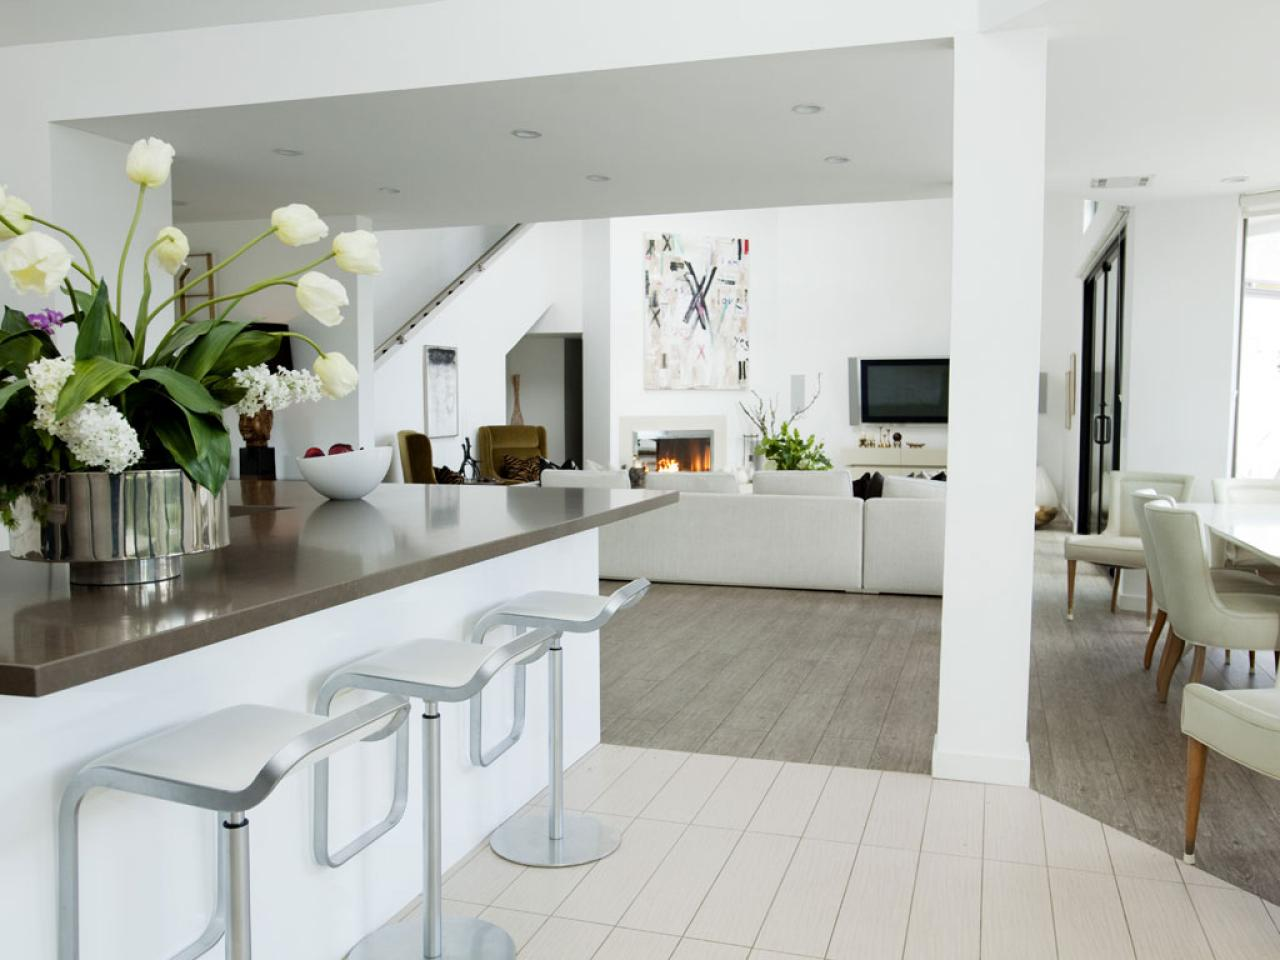 who 39 s your star style twin peek inside celebrity homes to